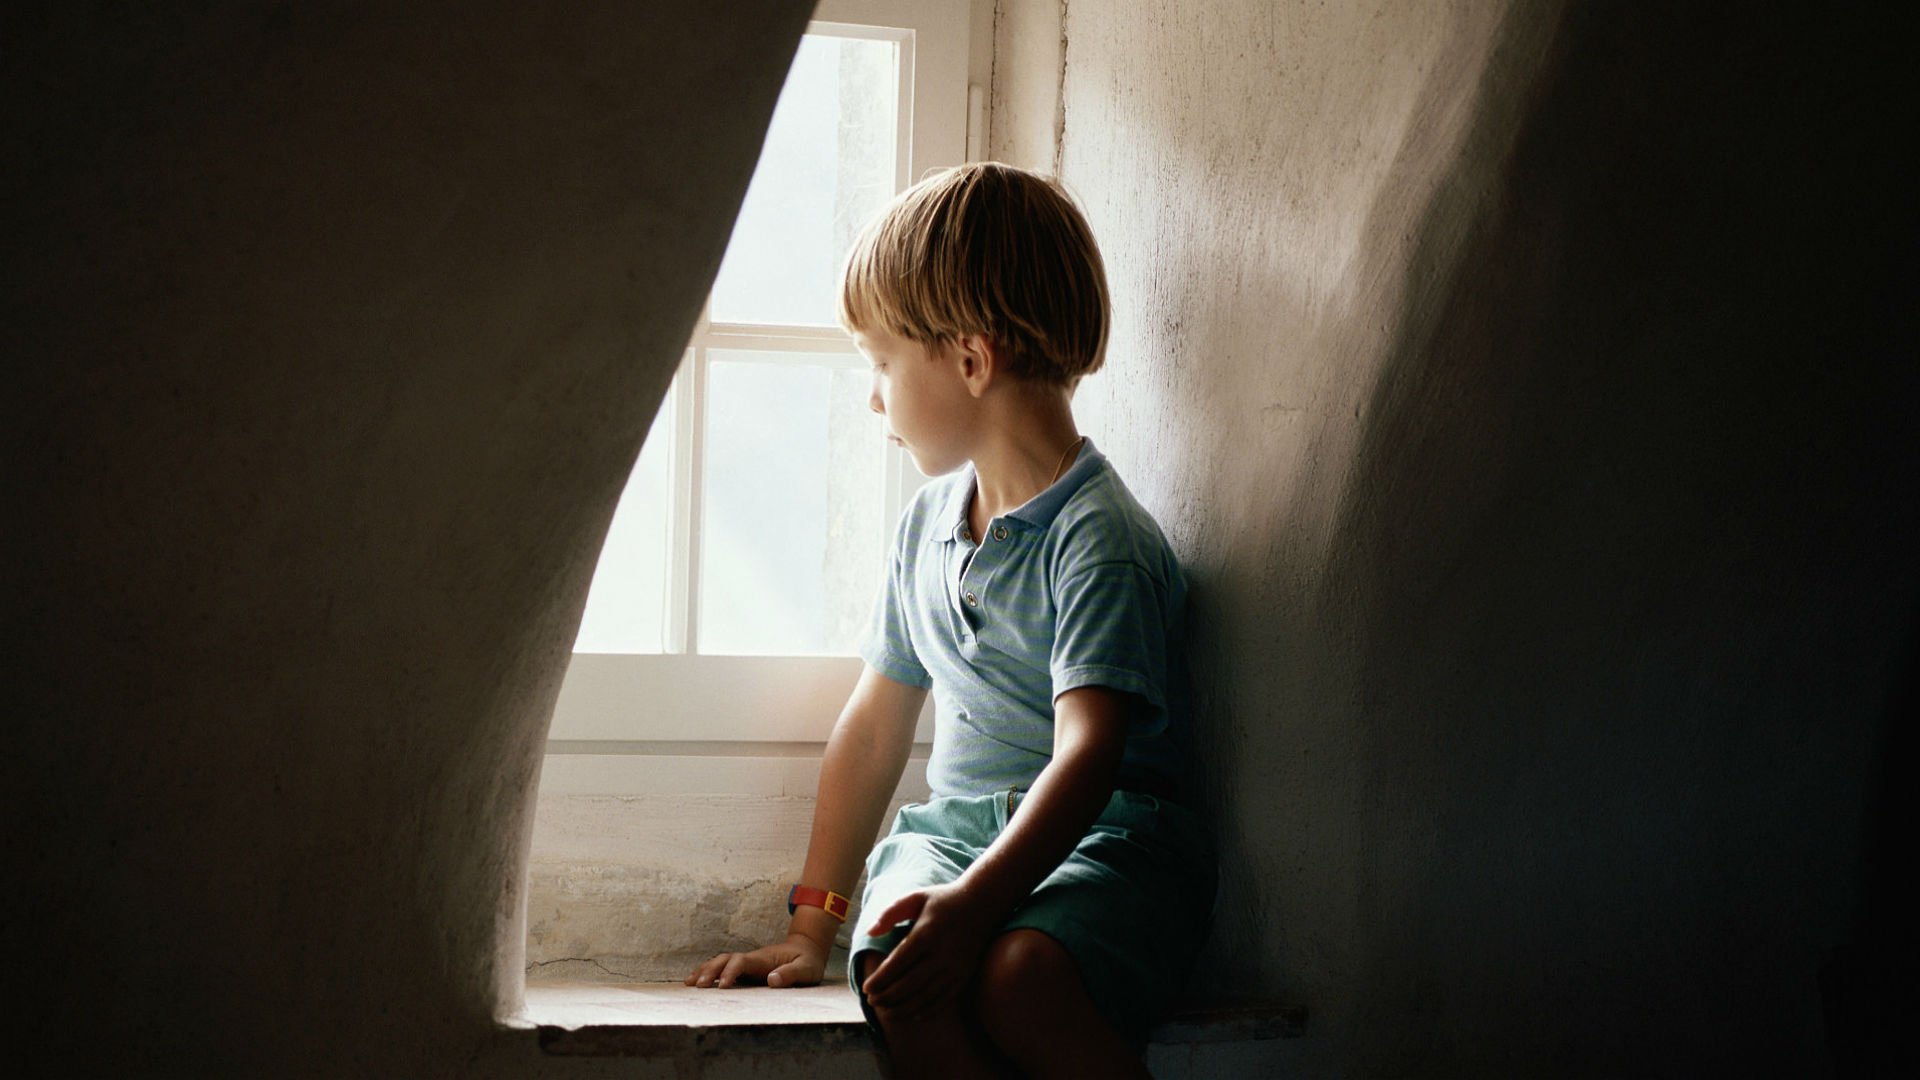 Lonely Mood Sad Alone Sadness Emotion People Loneliness Solitude Window Child Children Boy Wallpaper